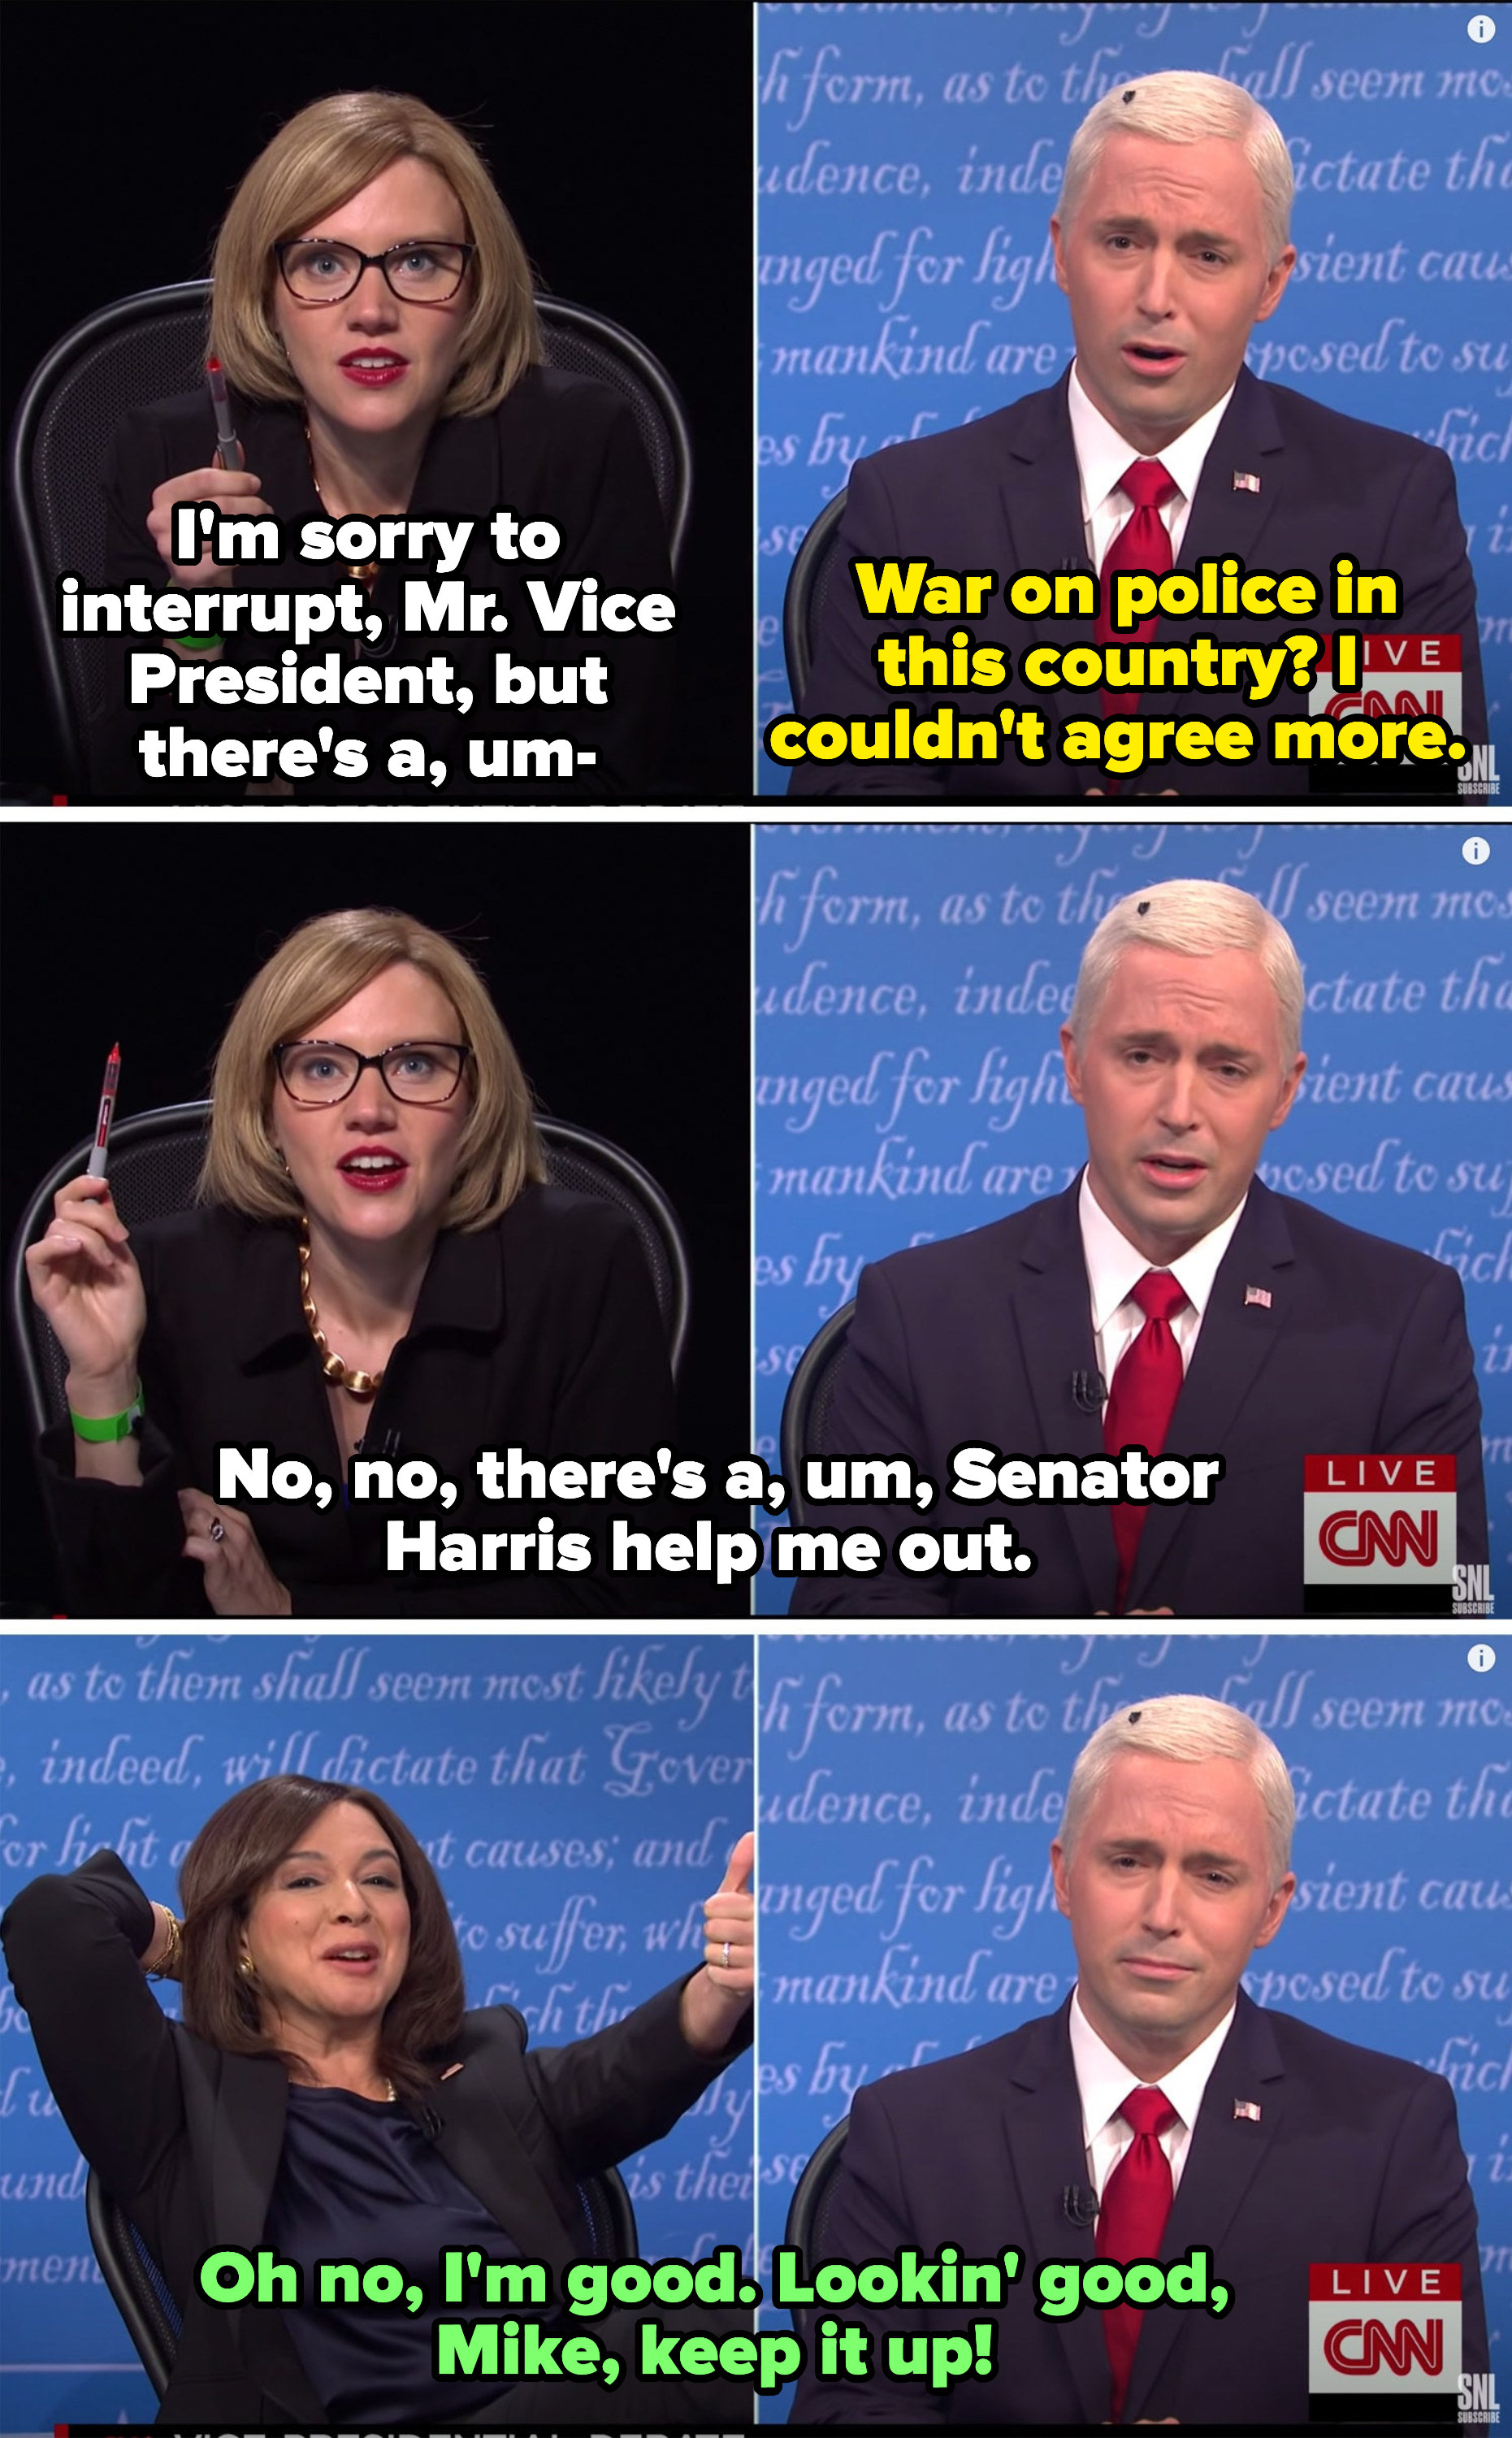 The moderator trying to subtly tell Pence about the fly on his head and Harris looking entertained